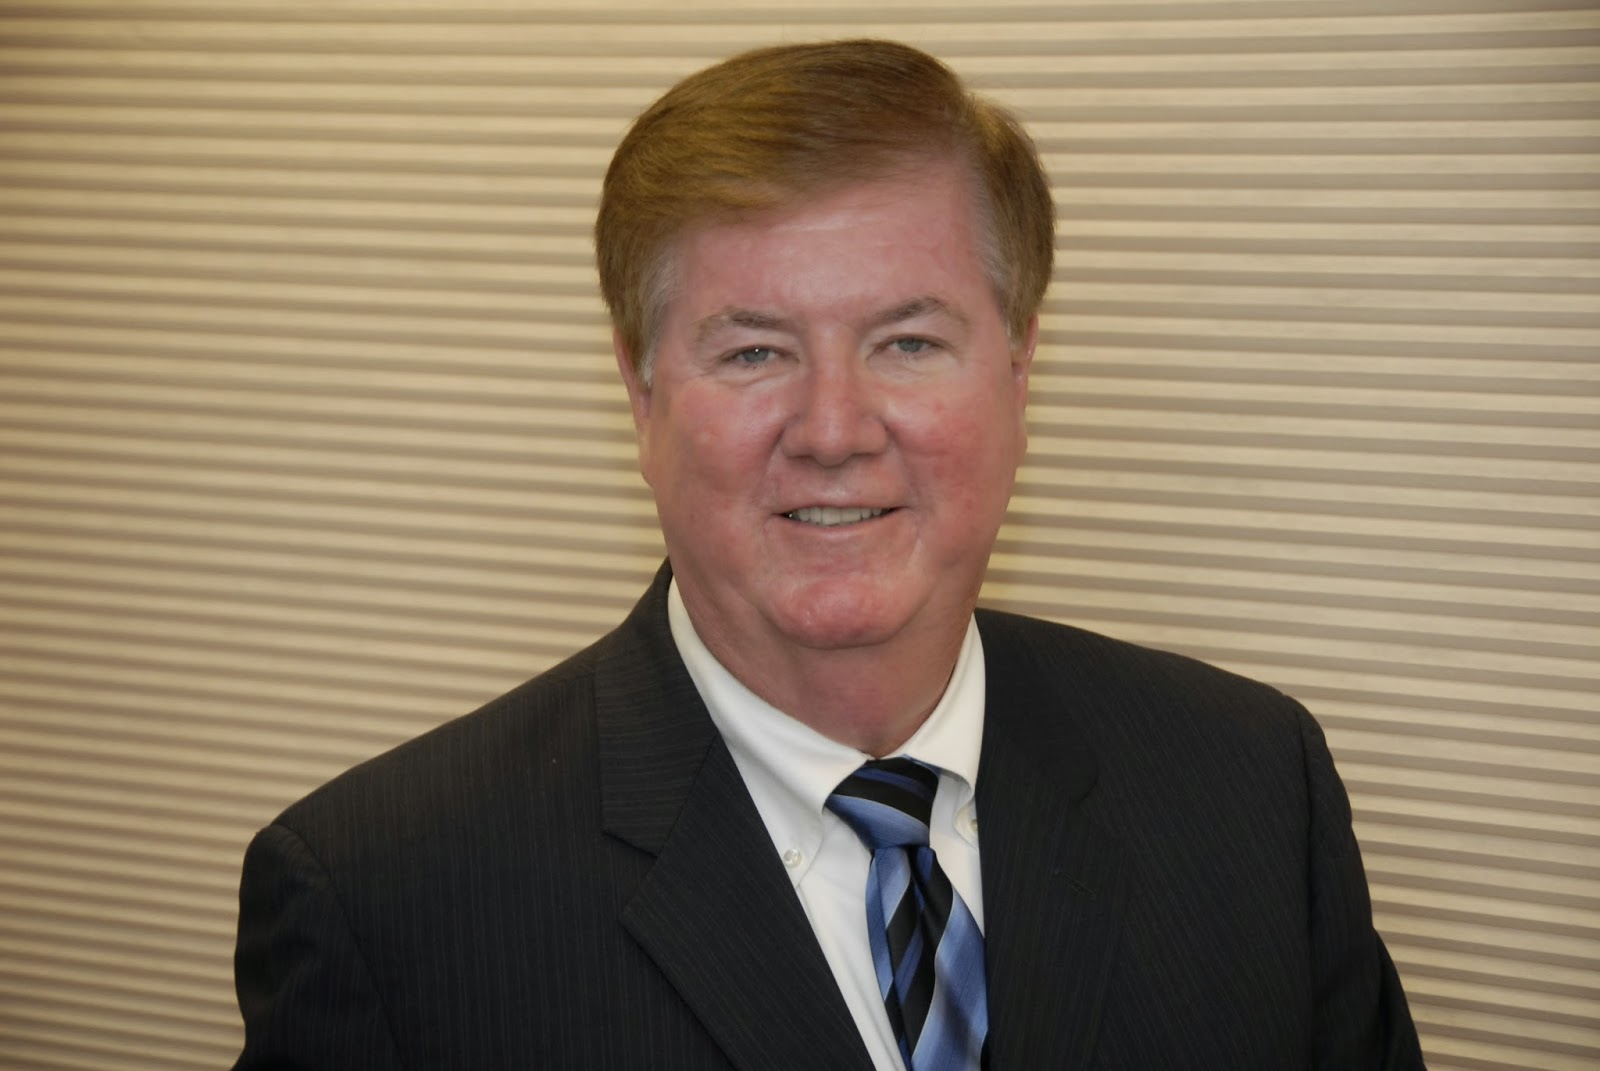 Roger H. Sublett, president of Union Institute & University